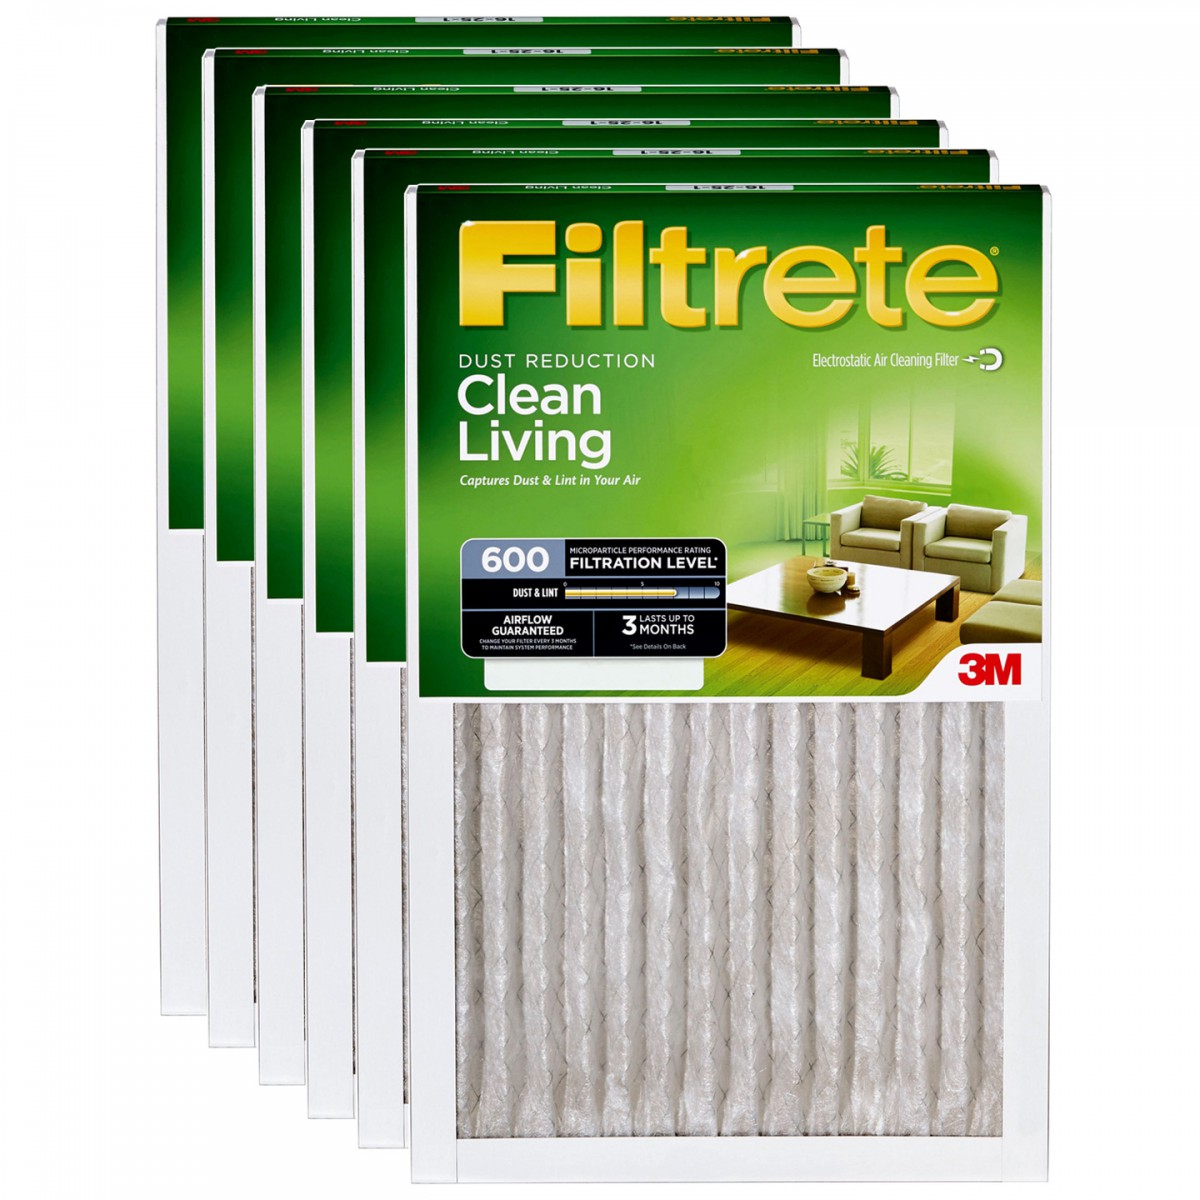 filtrete 600 dust reduction clean living filter 20x25x1 6pack - Filtrete Air Filter